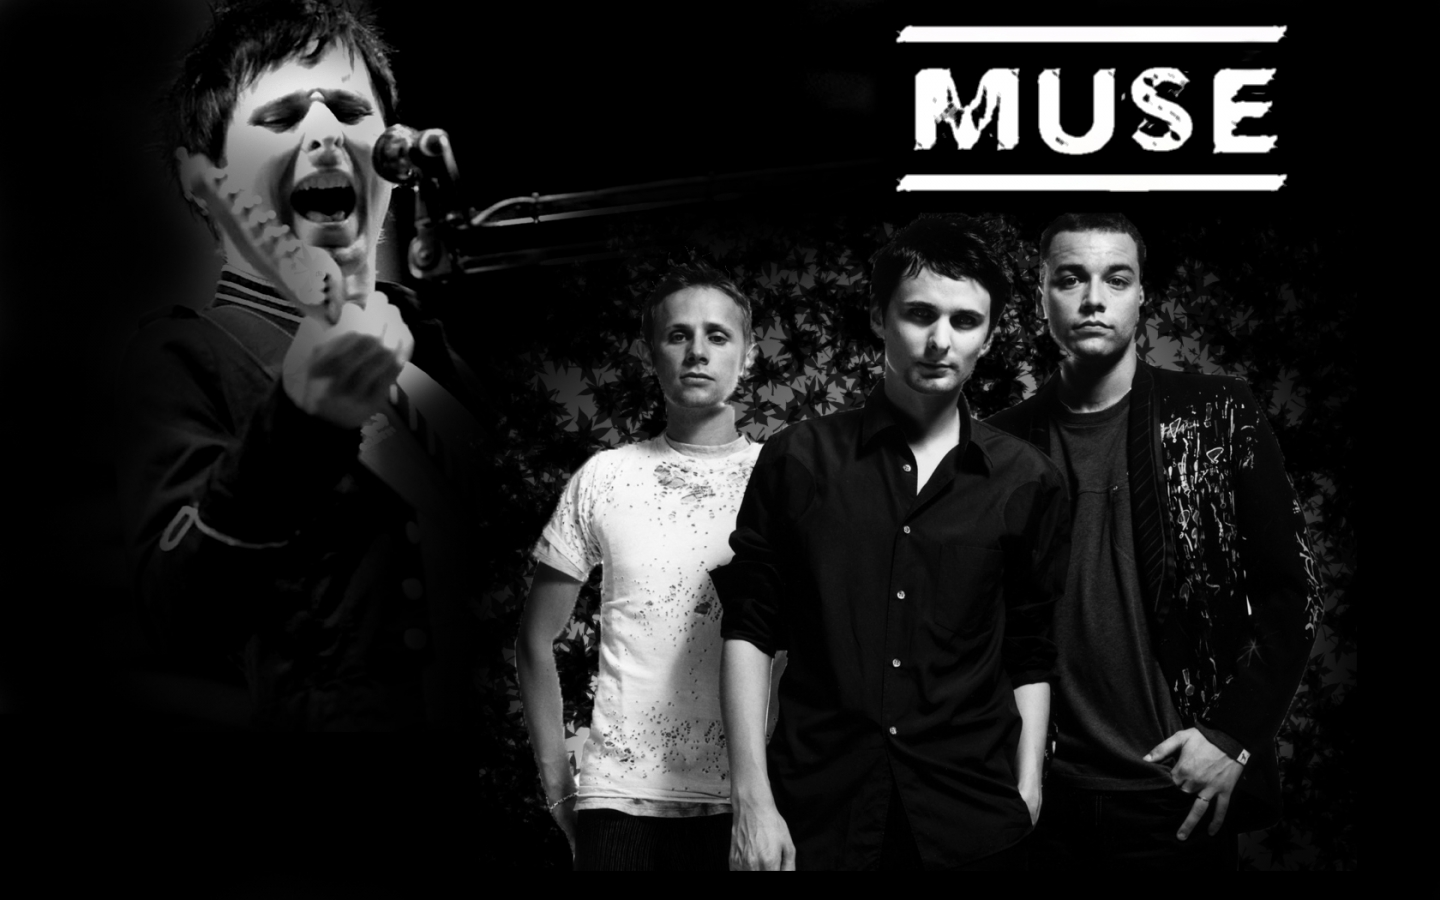 Muse, live at Rome arriva in dvd e blu-ray